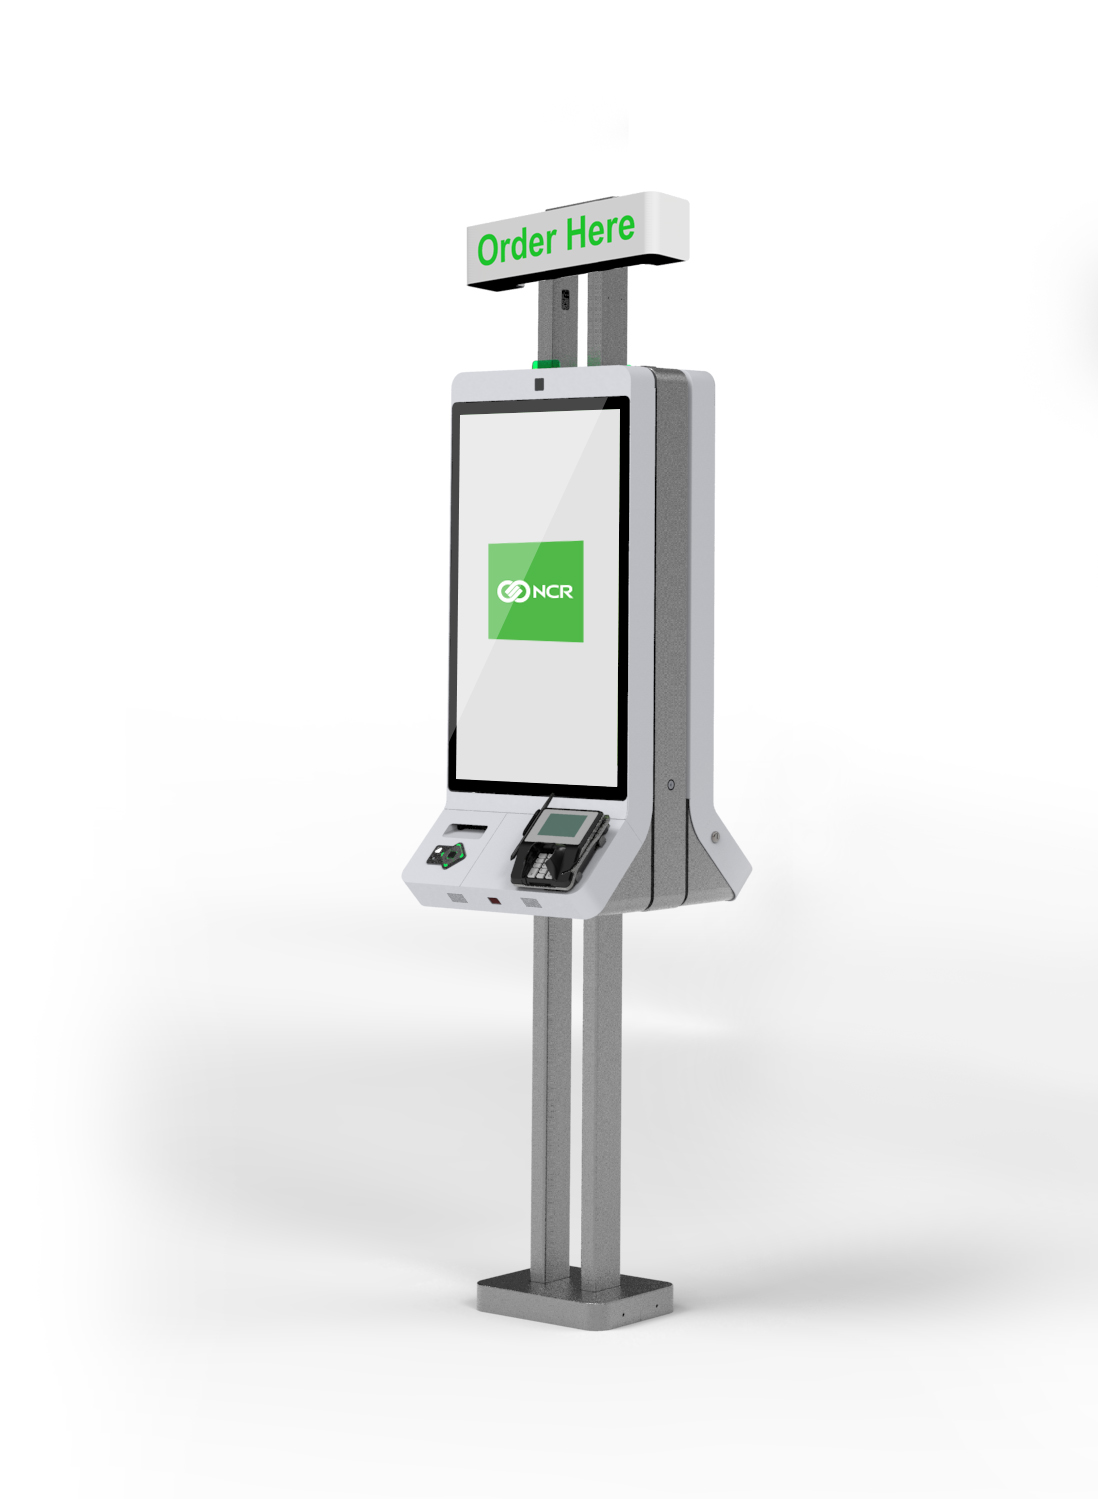 Green and silver NCR XK32 kiosk with a sign that says Order Here